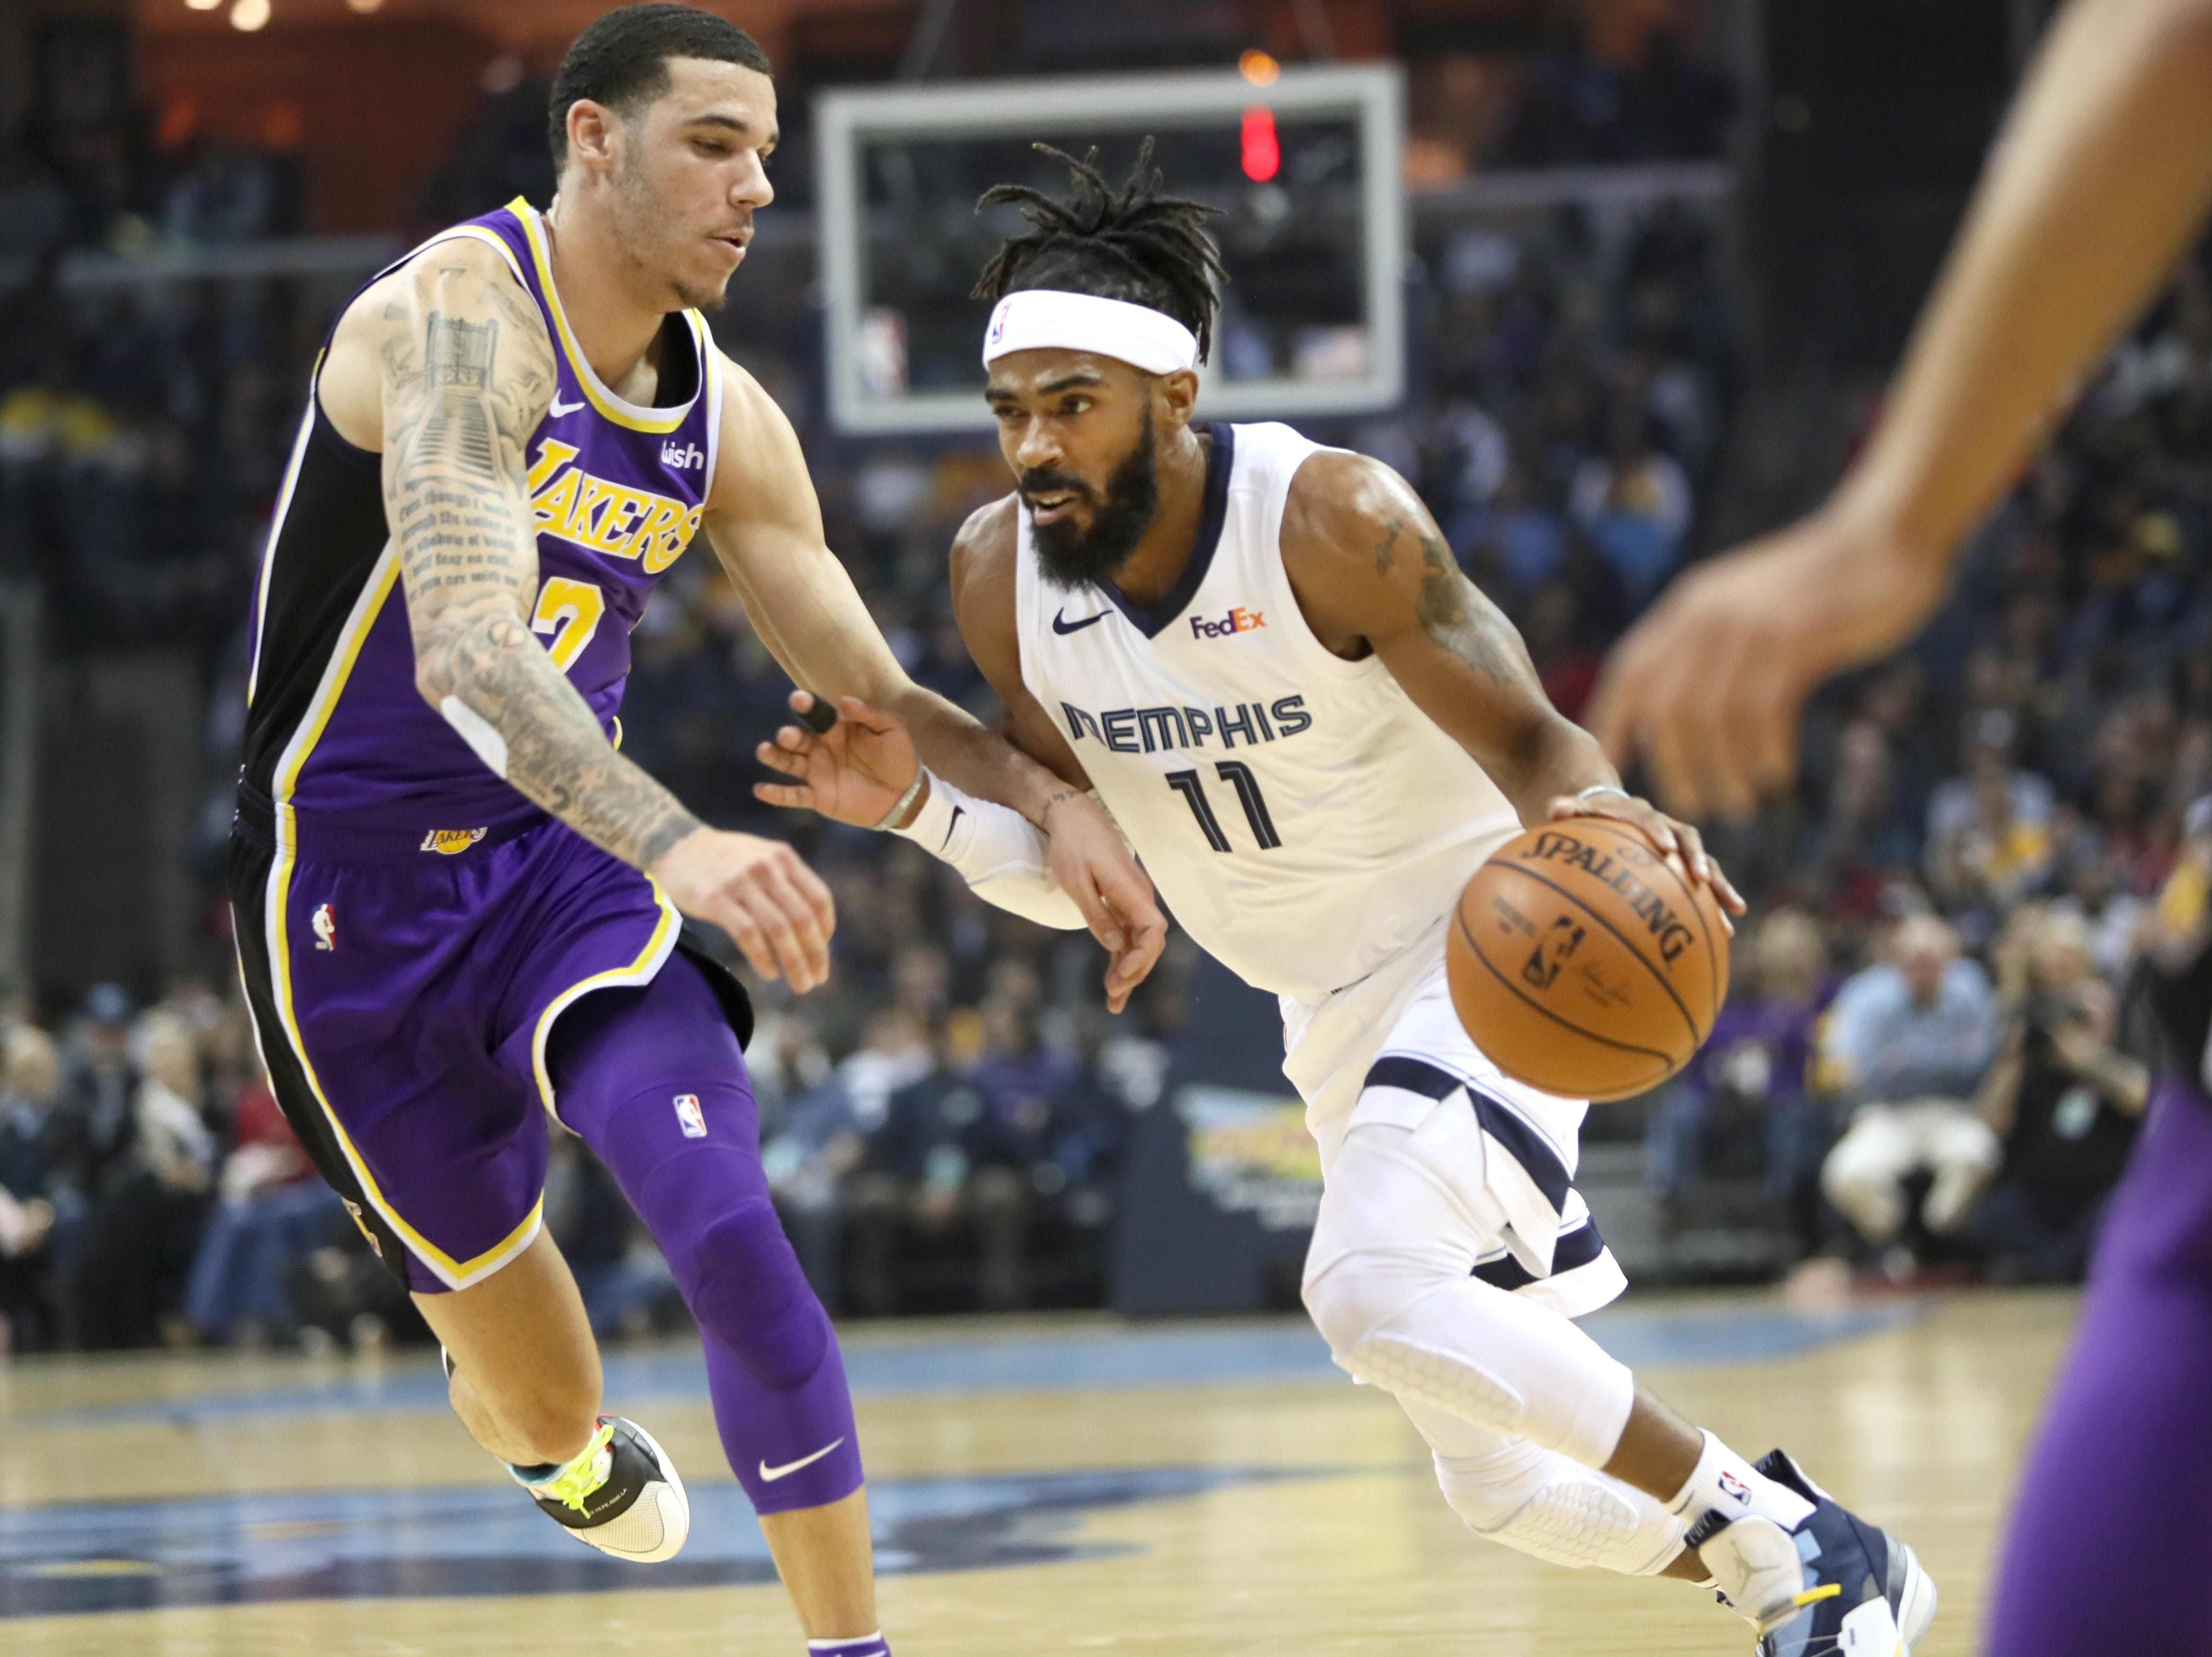 Memphis Grizzlies guard Mike Conley drives past Los Angeles Lakers defender Lonzo Ball at the FedExForum on Saturday, Dec. 6, 2018.